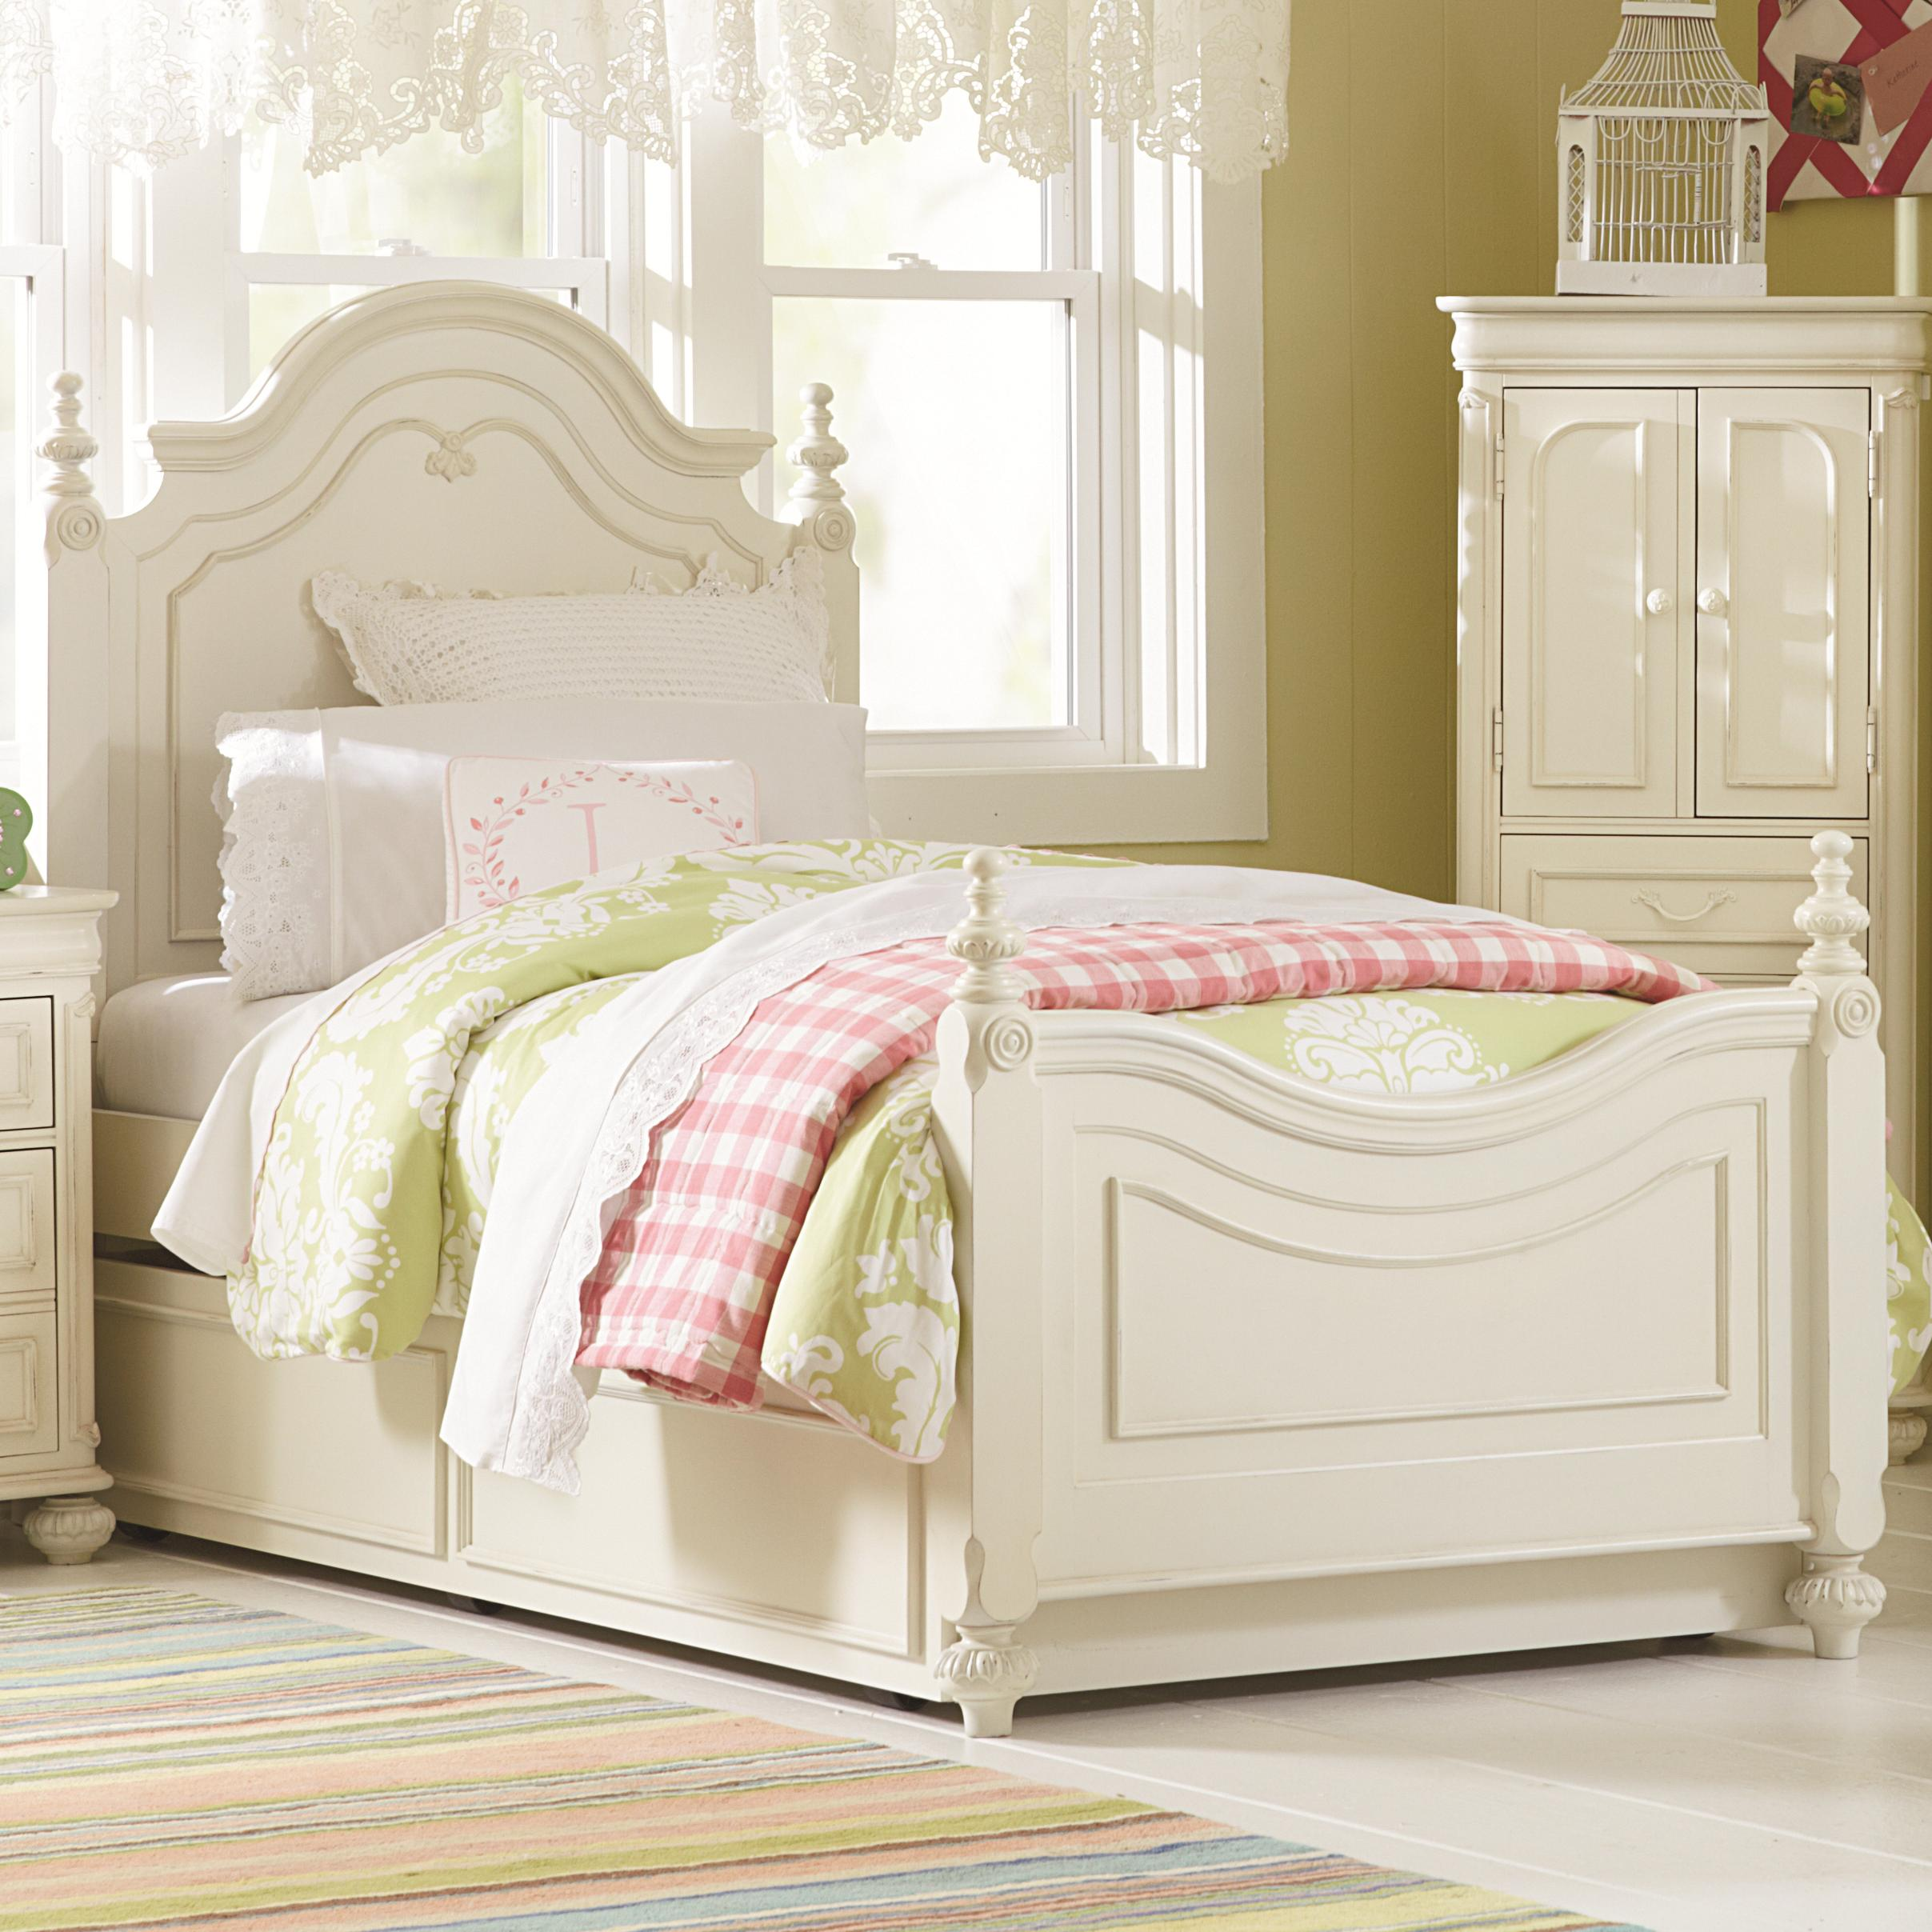 Twin Low Poster Bed with Trundle Unit. Twin Low Poster Bed with Trundle Unit by Legacy Classic Kids